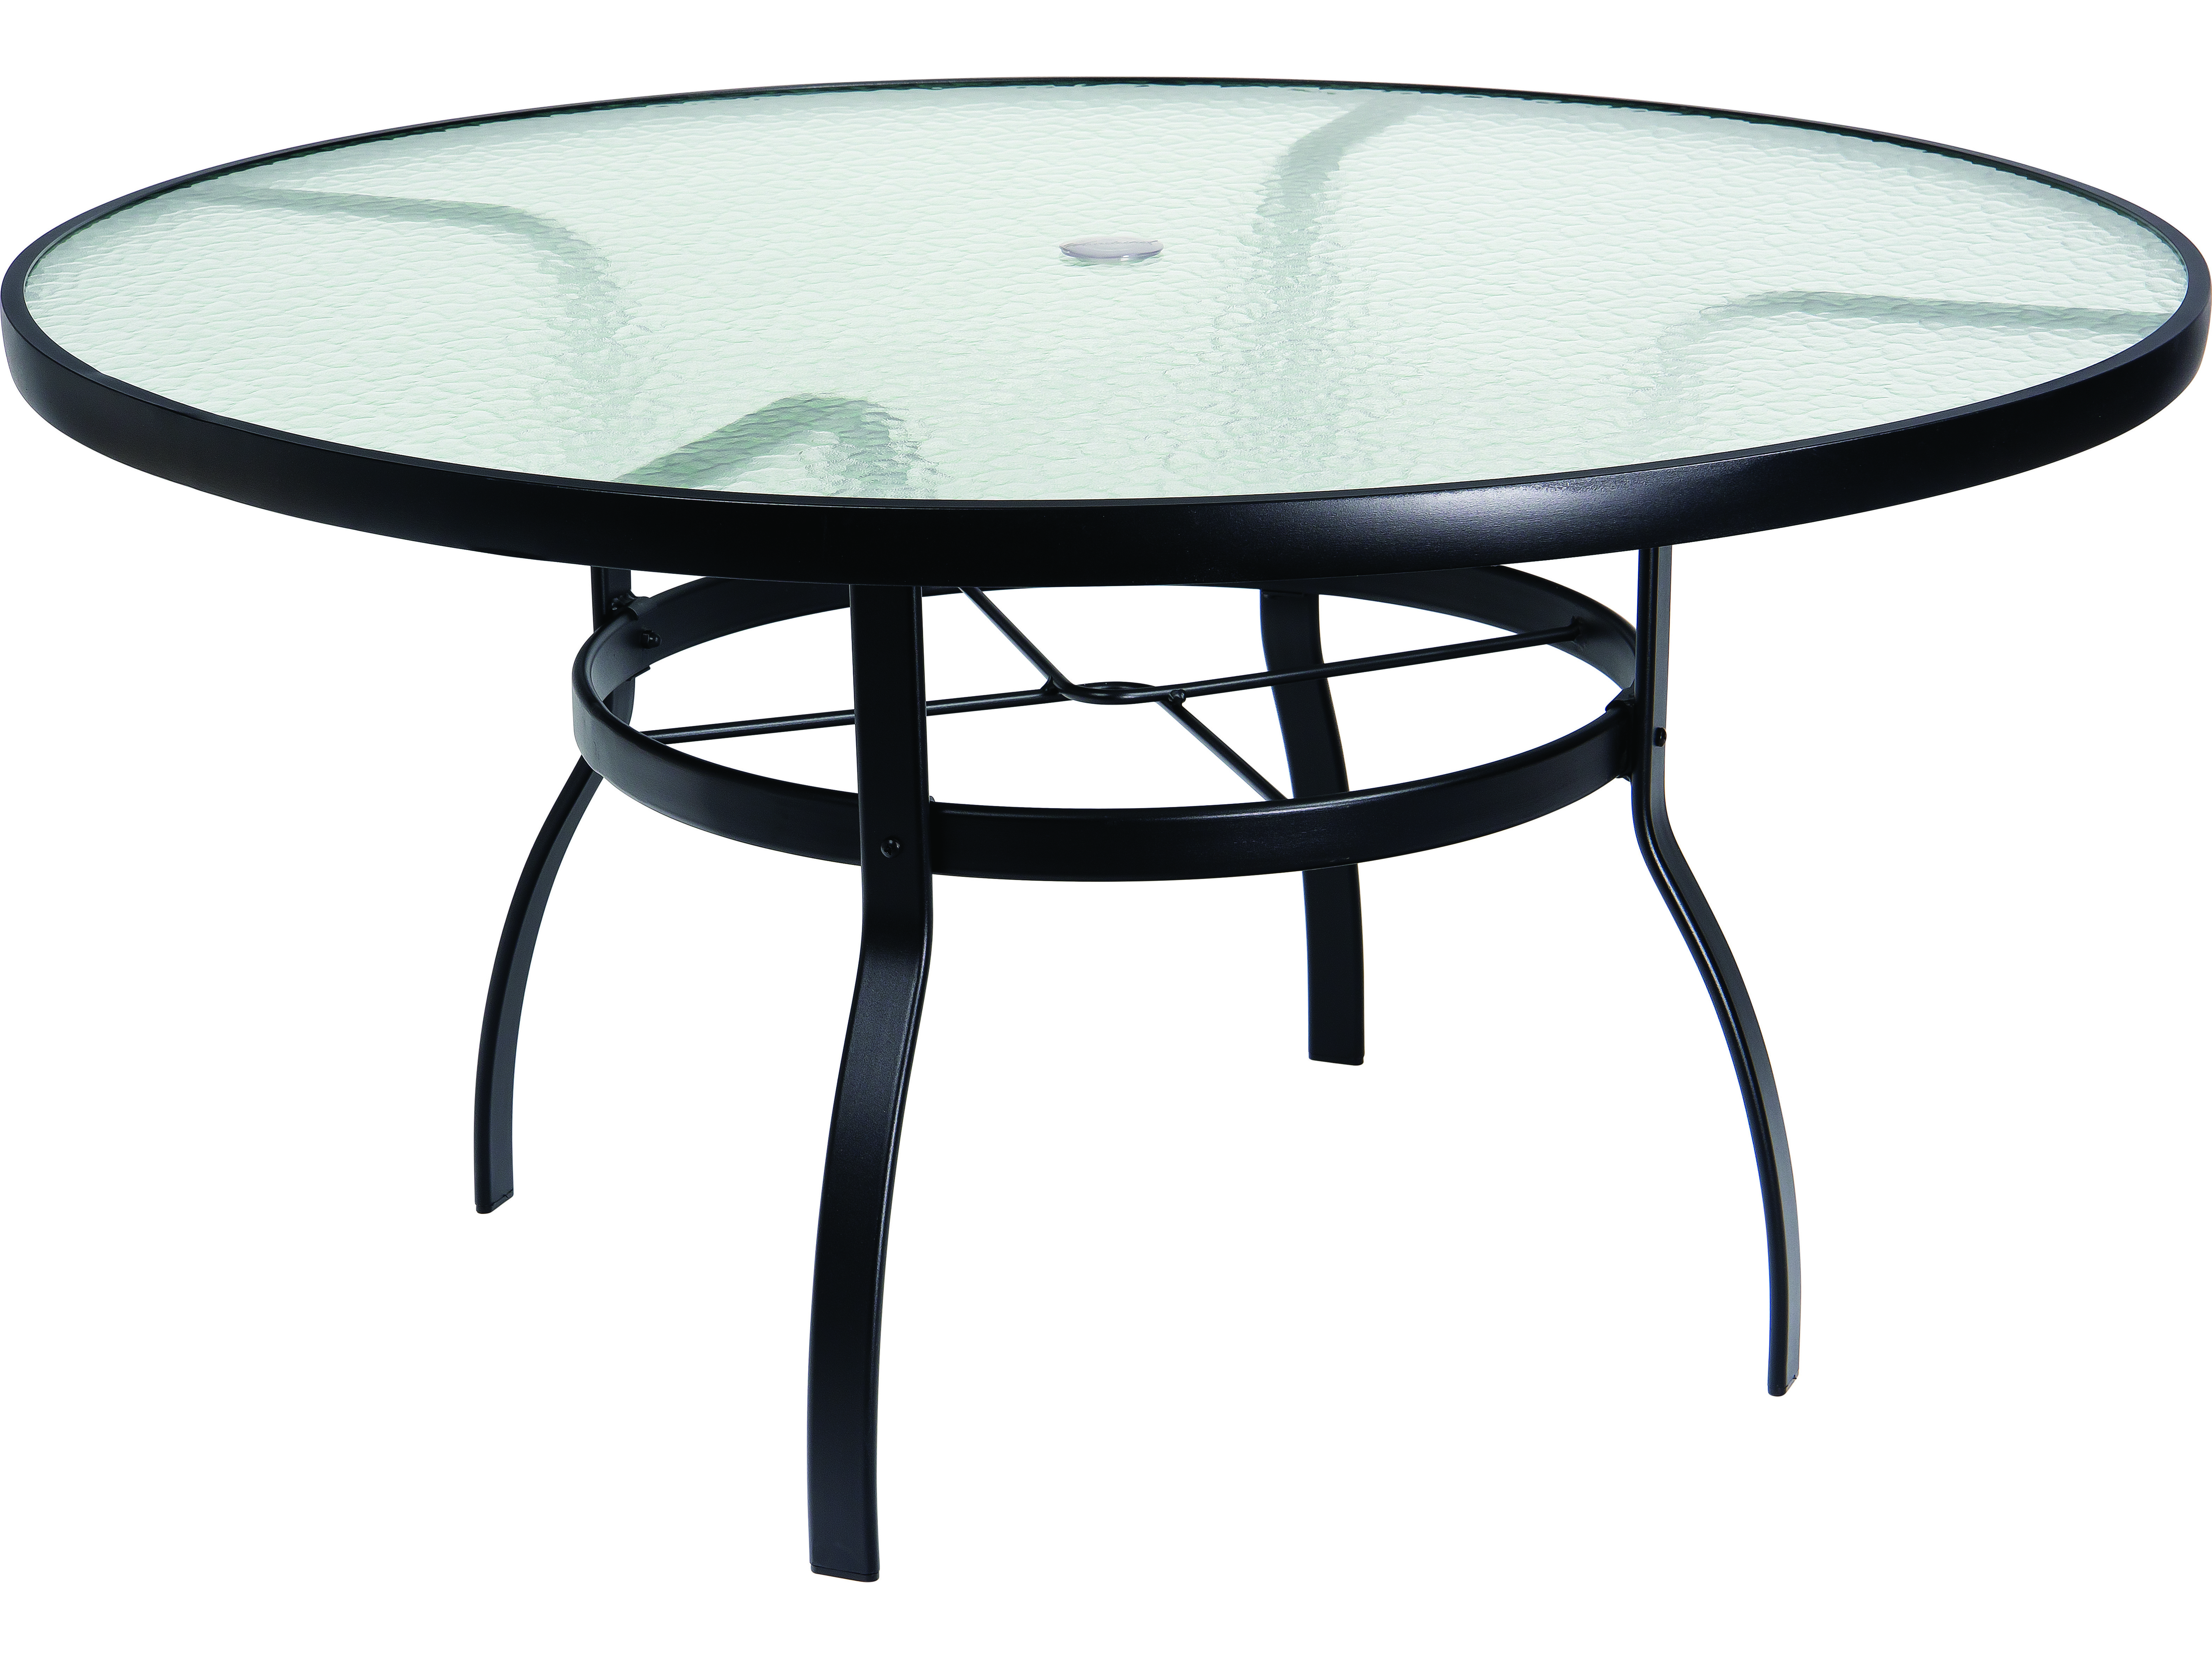 Woodard Deluxe Aluminum 54 Round Obscure Glass Top Table